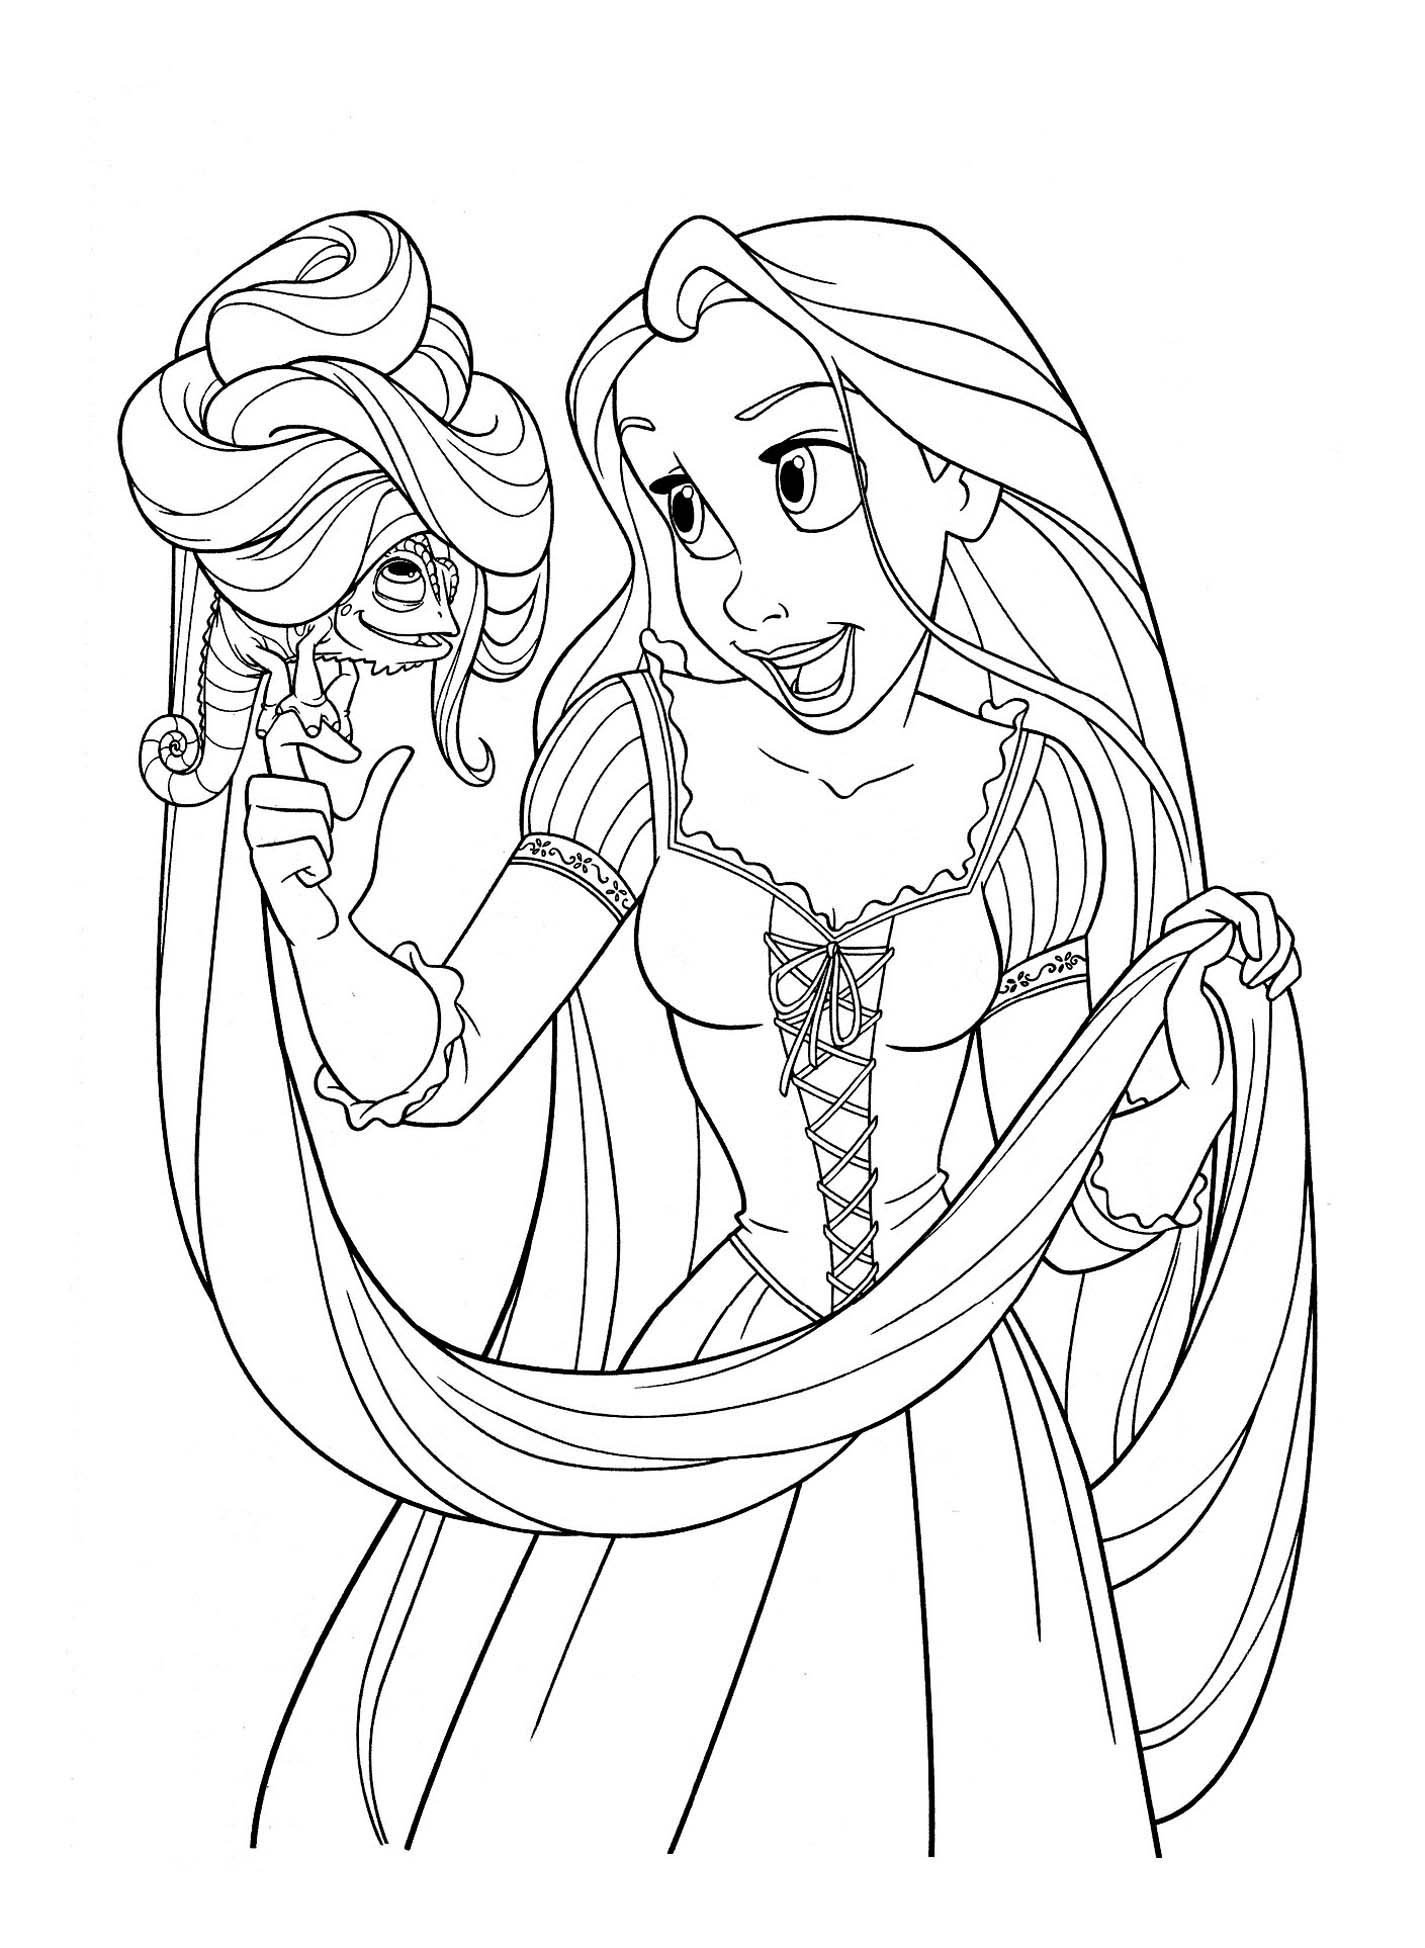 Tangled To Download For Free Tangled Kids Coloring Pages